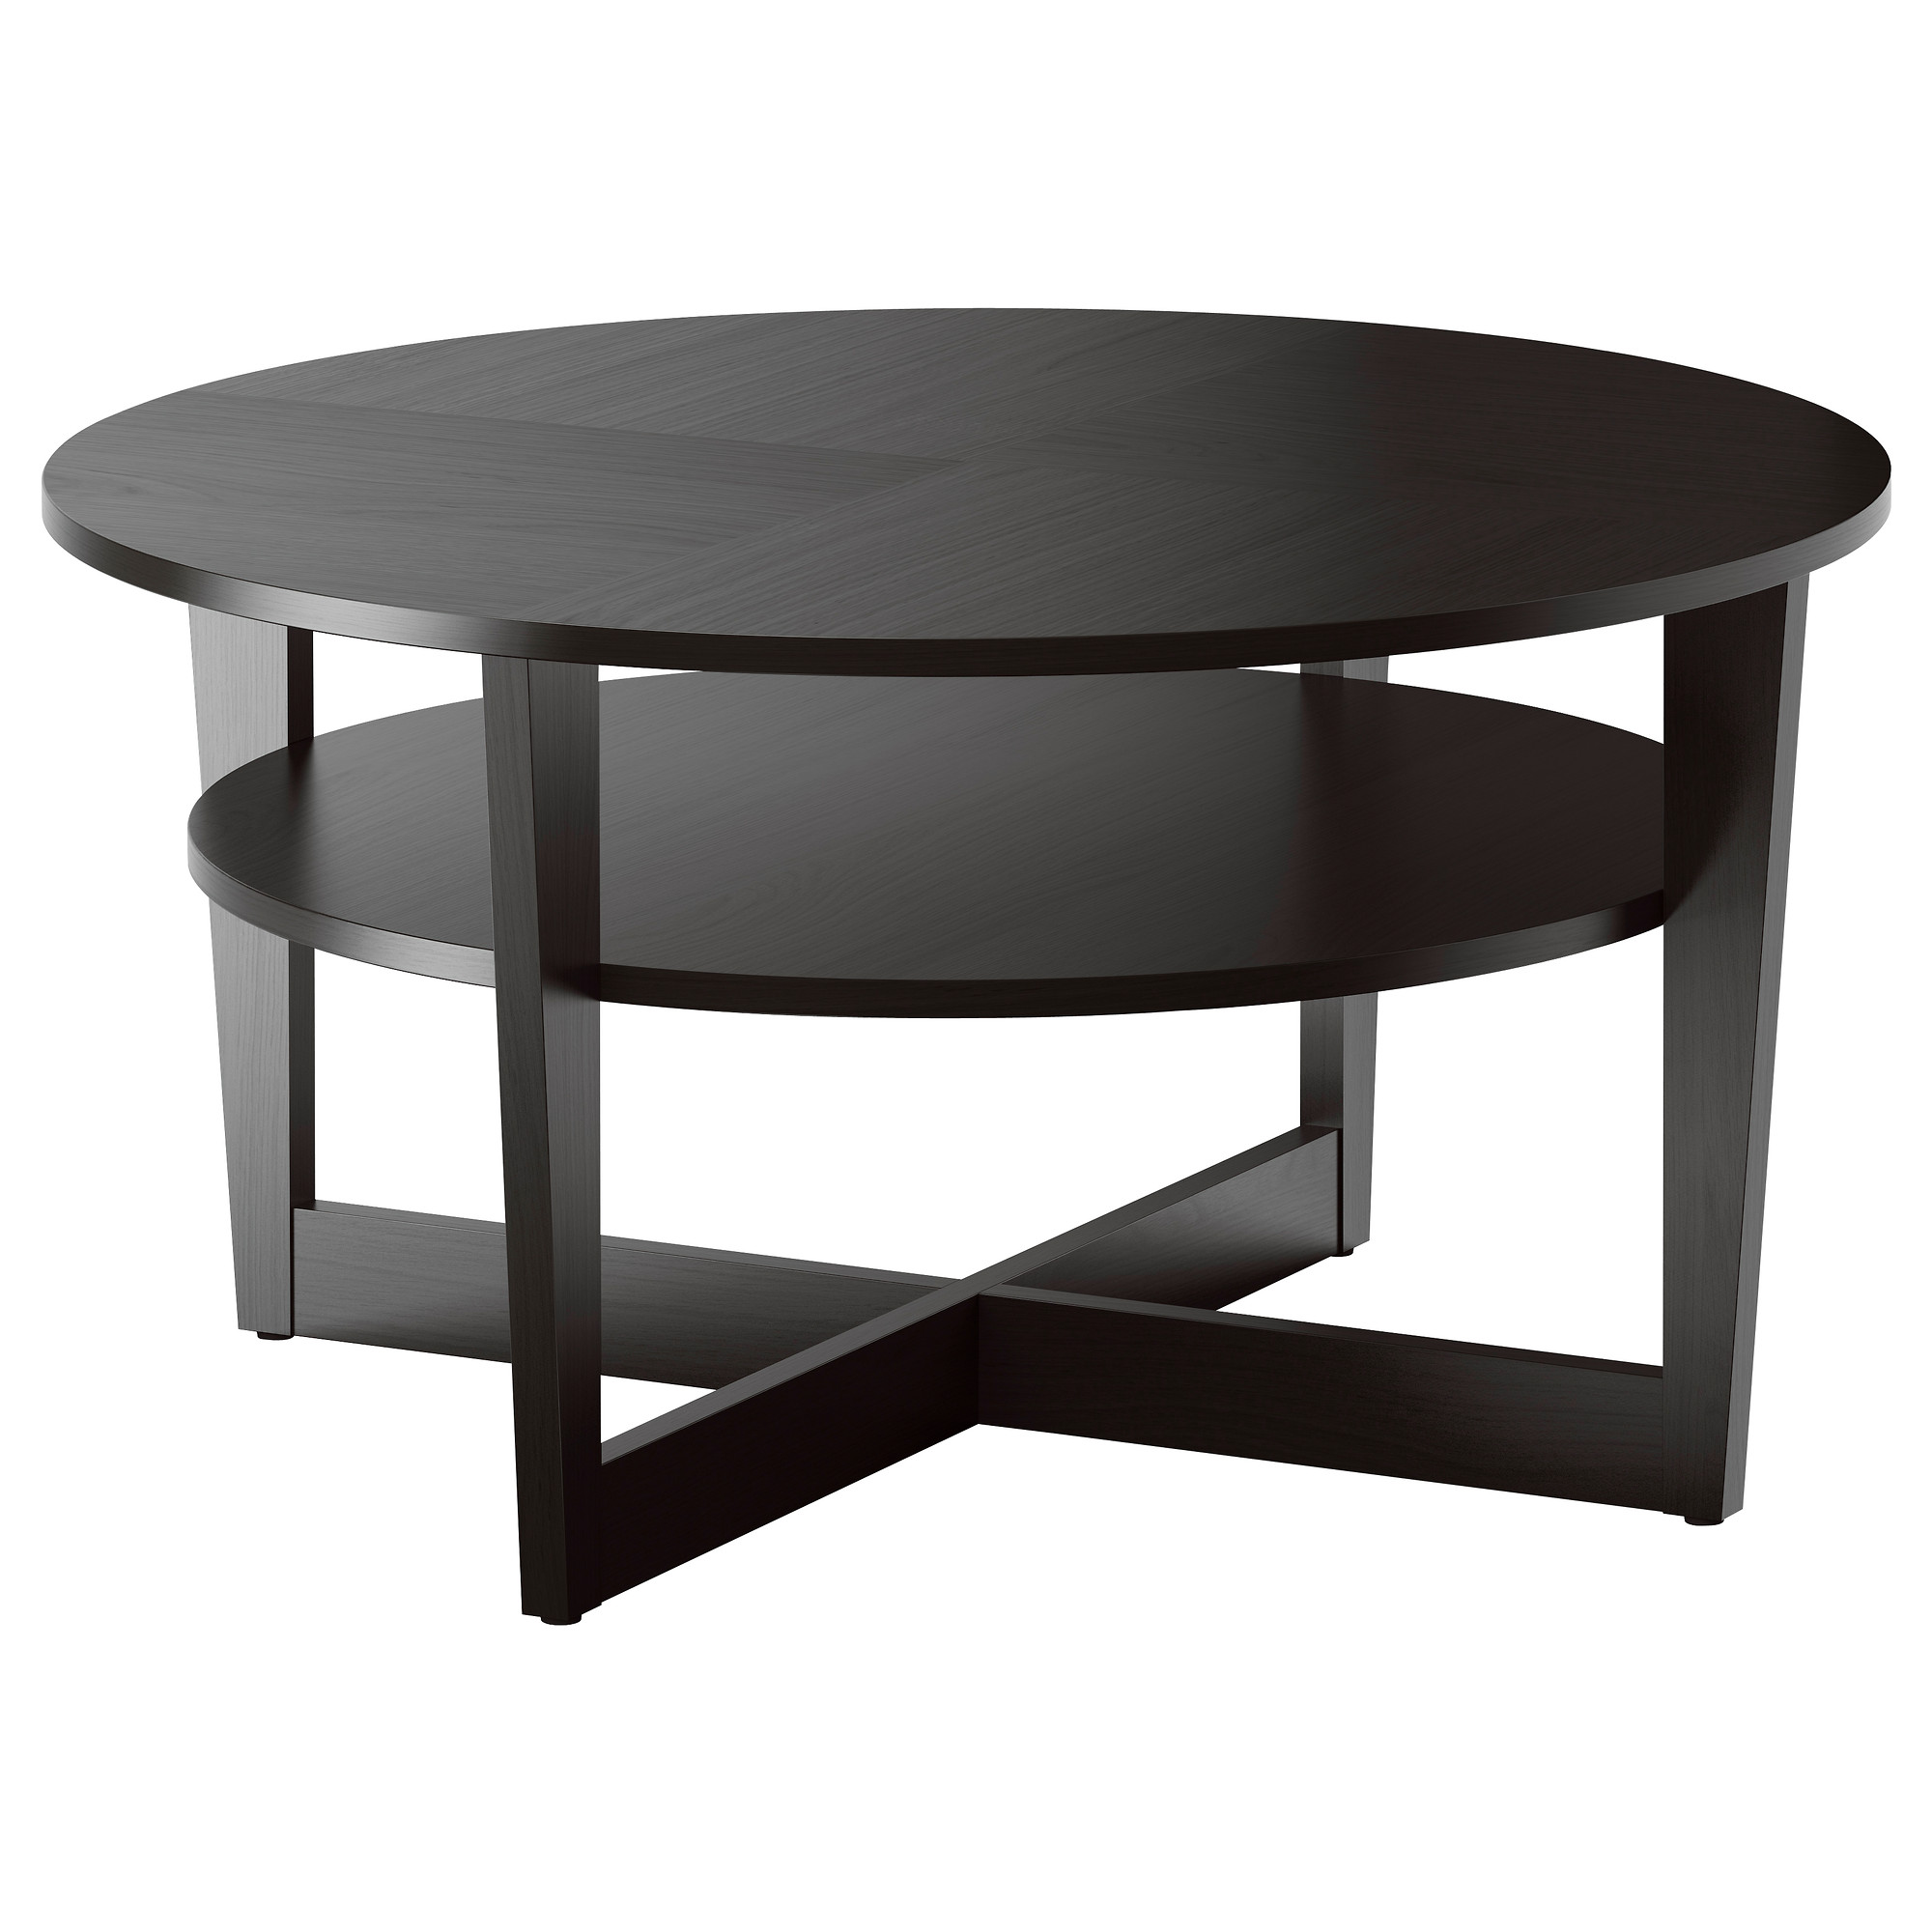 10 Best Collection Of Small Round Coffee Tables Ikea